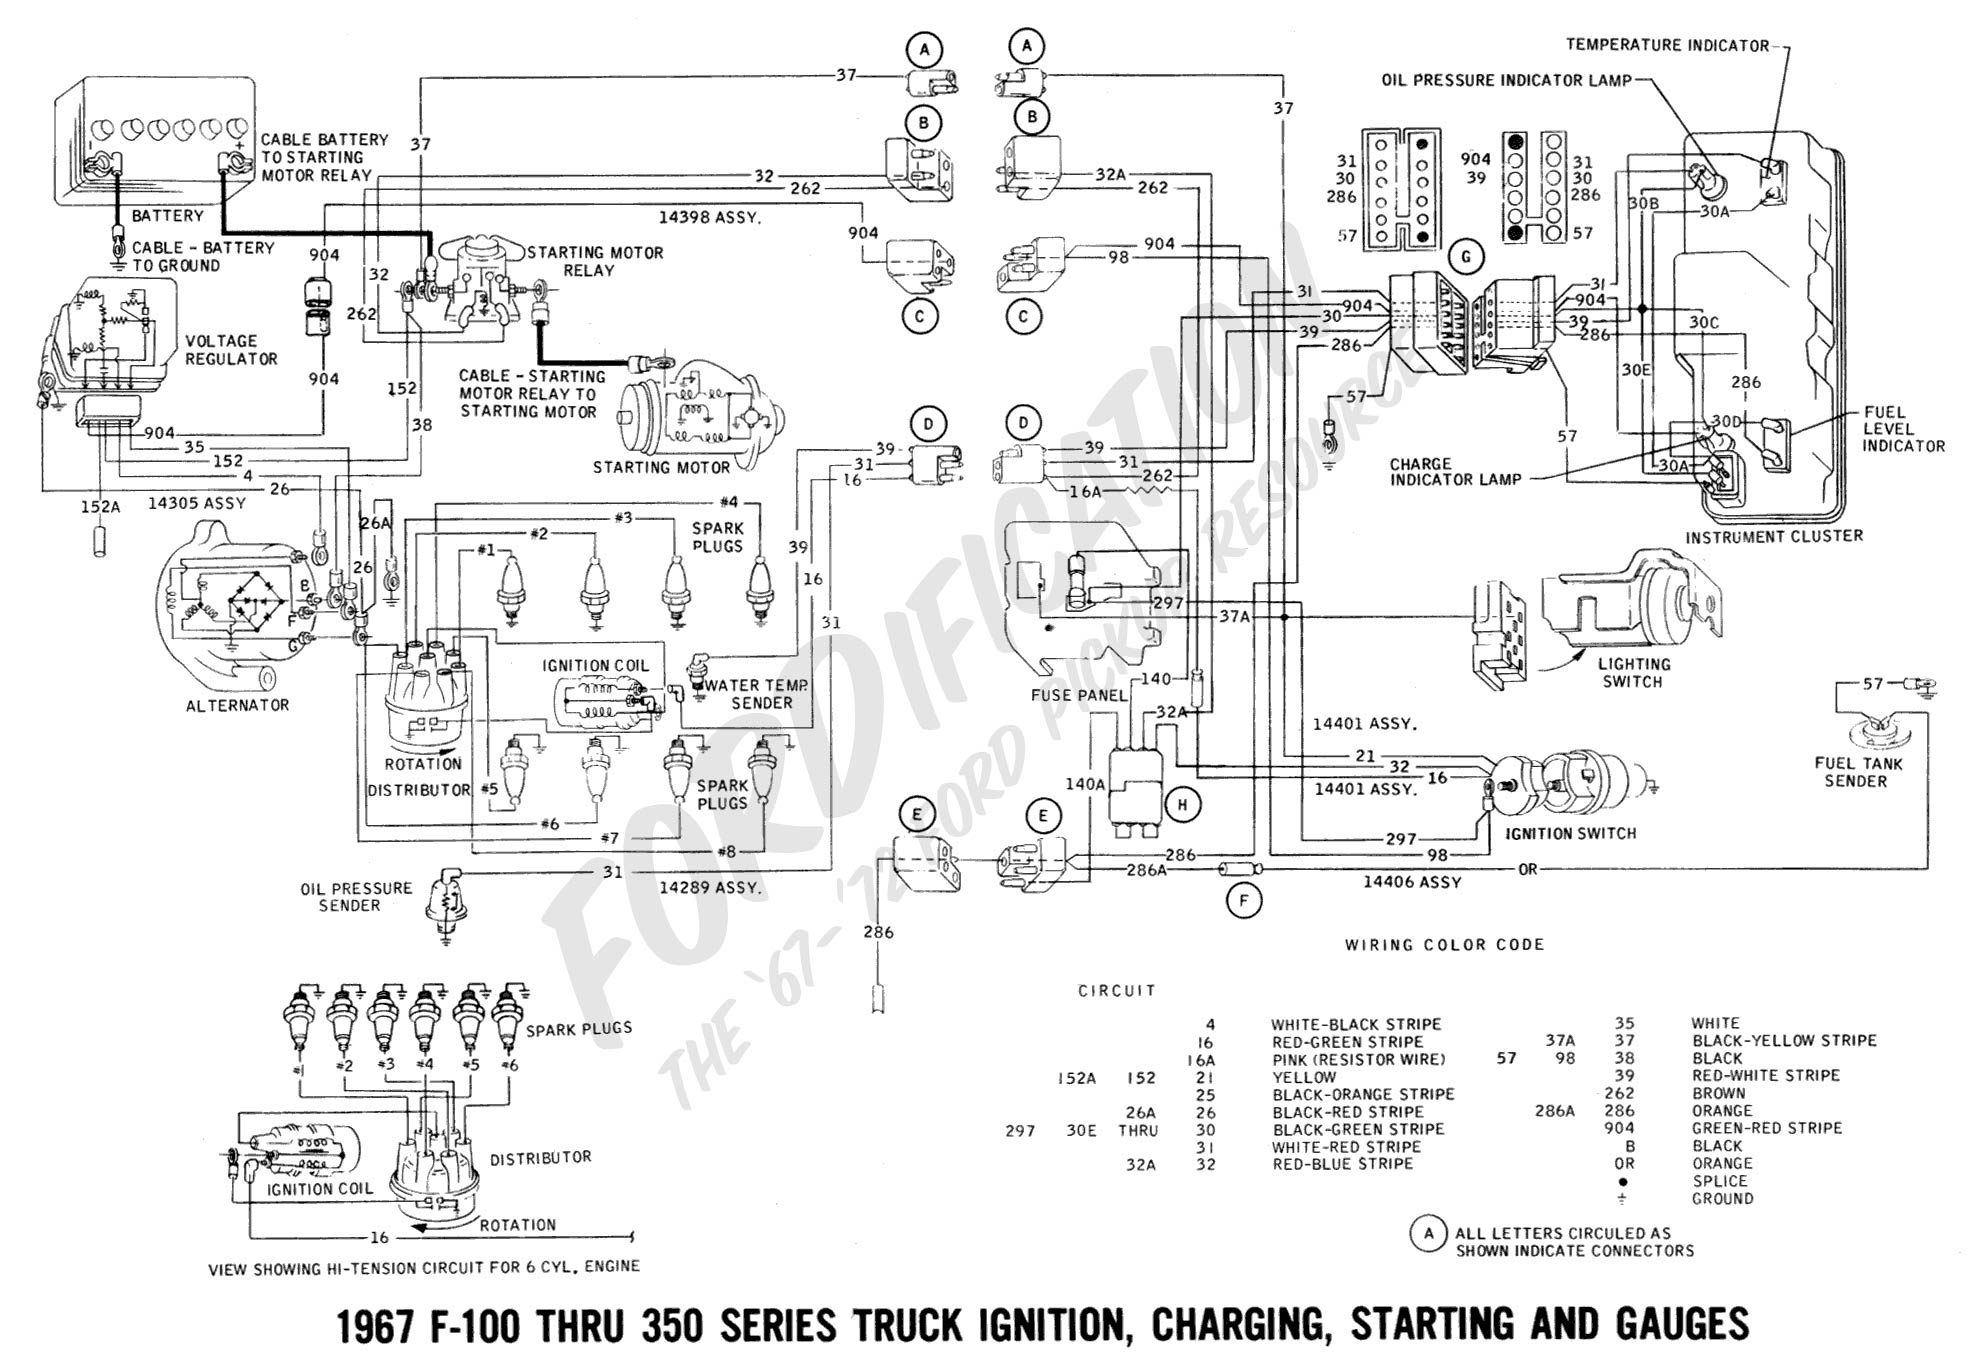 Ford Ignition Switch Wiring Diagram - Wiring Diagram Explained - Ford Wiring Diagram